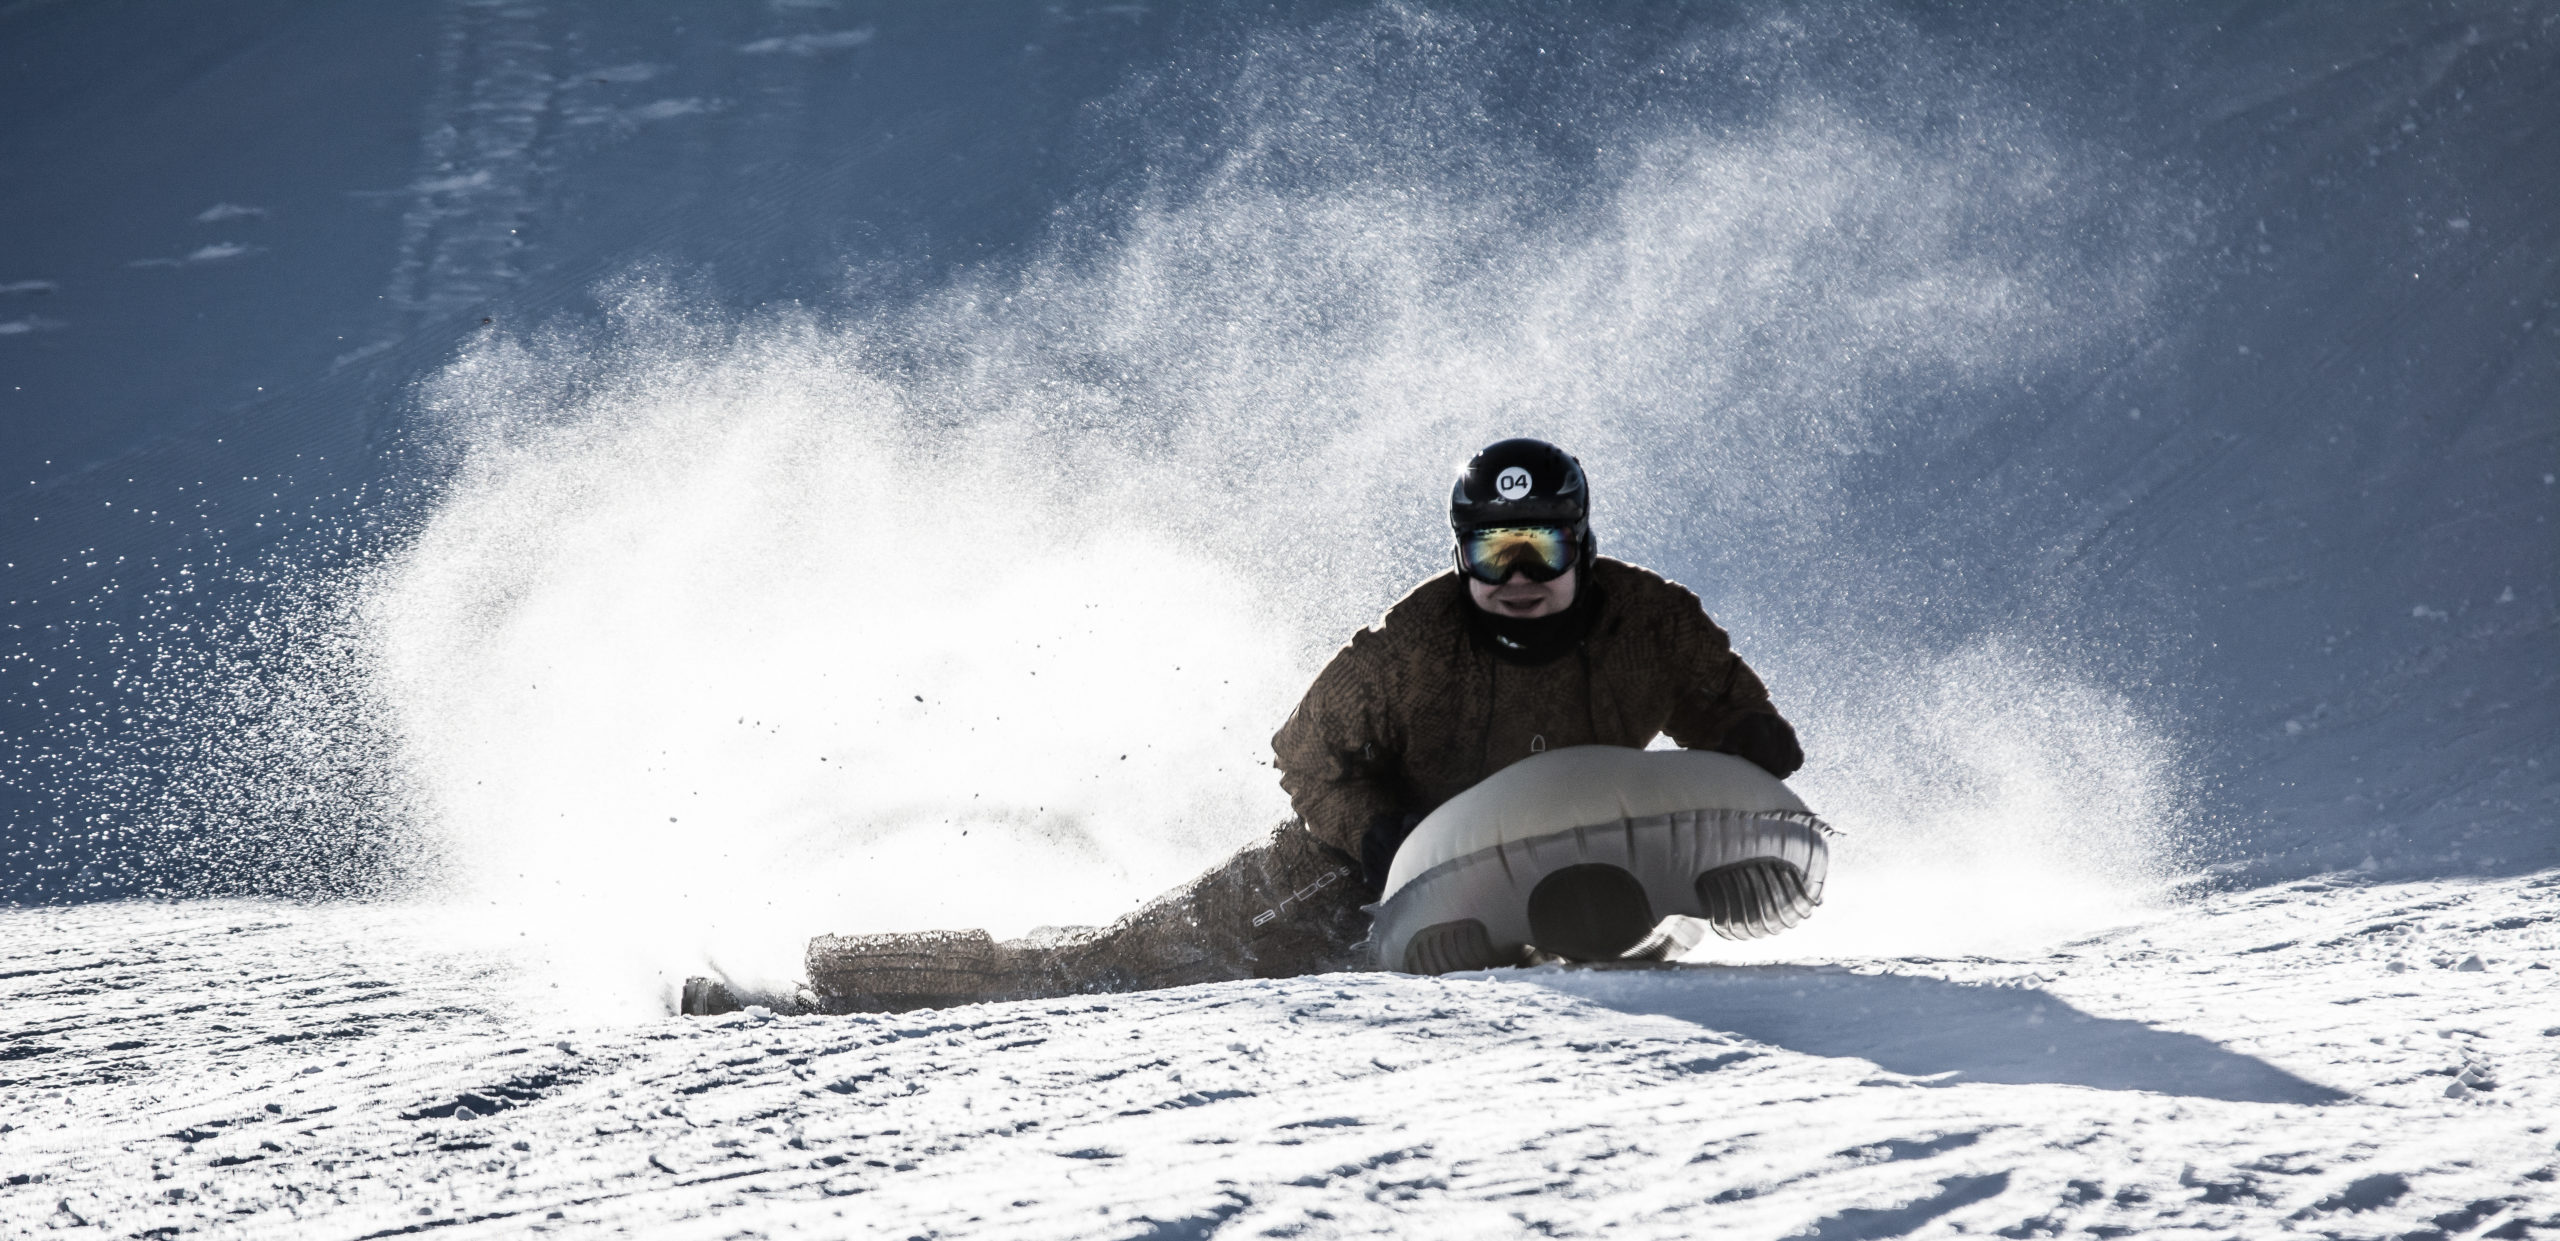 airboard_23-12-2013_2242-3